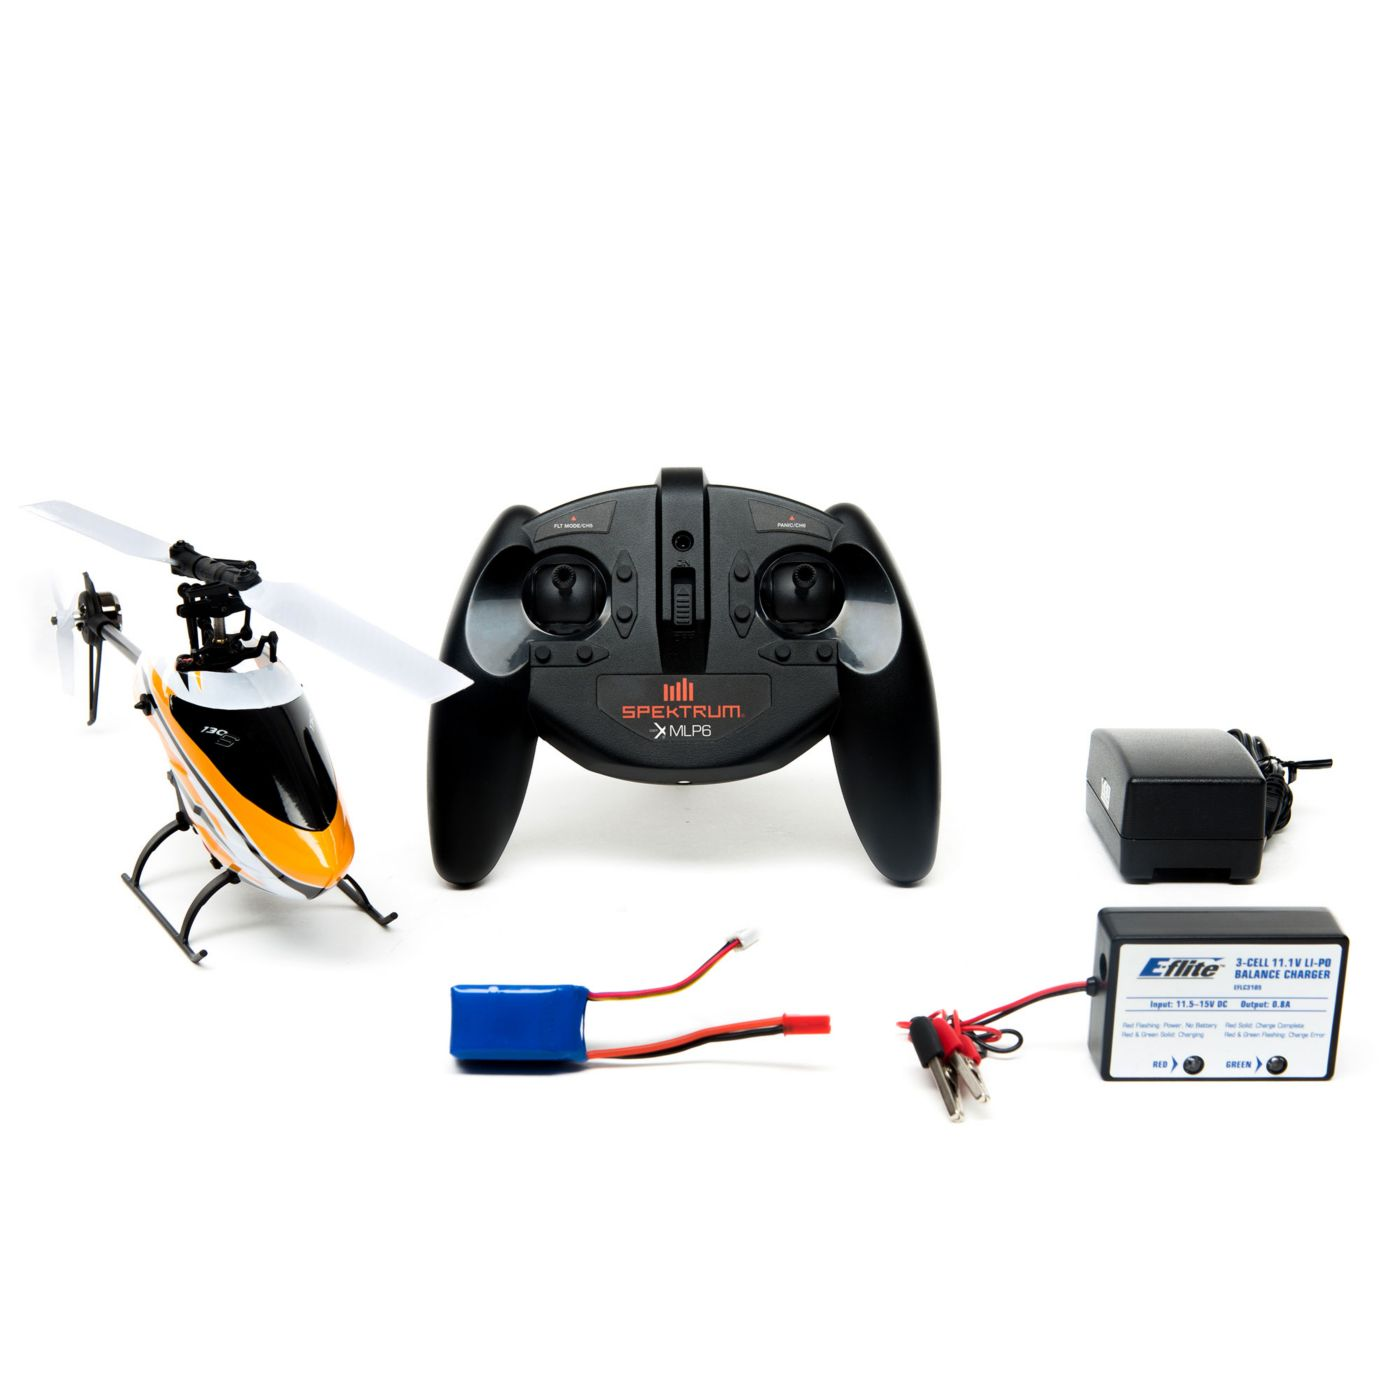 align helicopters with Blade 130 Rtf Inclusief Safe Technologie P 32272 on Hubsan Fpv Video Bril P 9604 moreover Jeep All Terrain Colored By Ania 121739 in addition T Rex 700xn Dominator Super  bo Rh70n11xt moreover 18 Shocking Facts You Want To Know About Indian Soldiers At Siachen Glacier likewise Align Rc Helicopters Website.